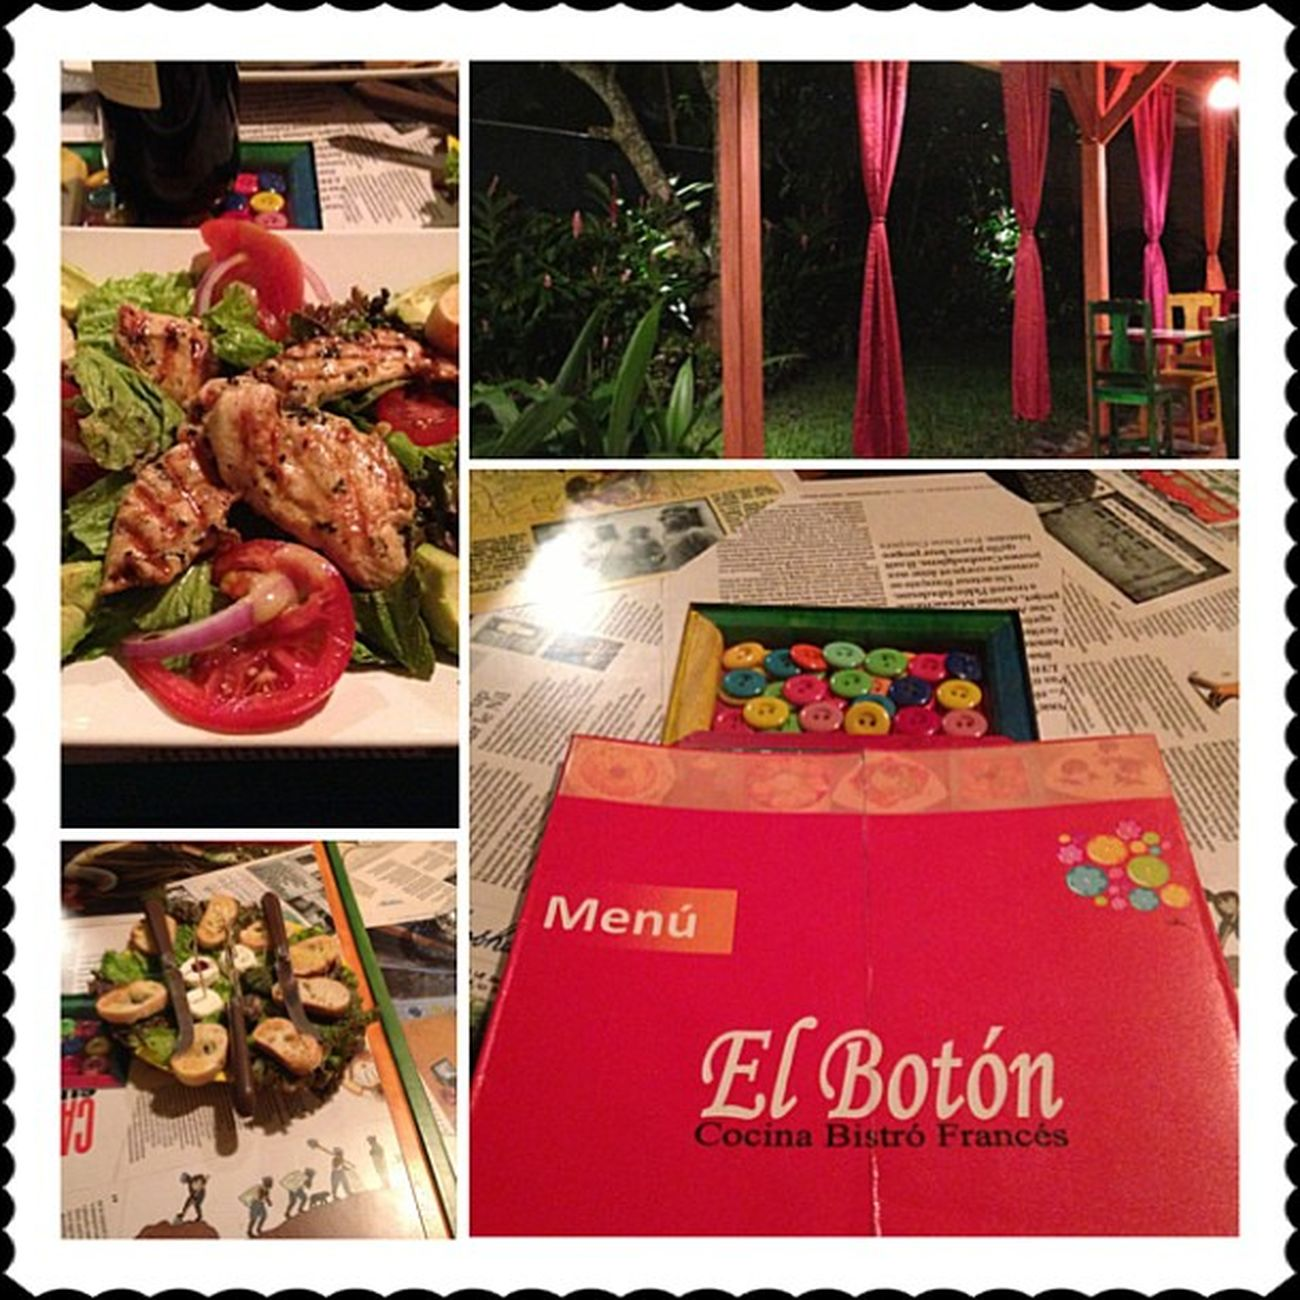 Dinner with the team. Amazing food at El Botón. WorkLife Elboton